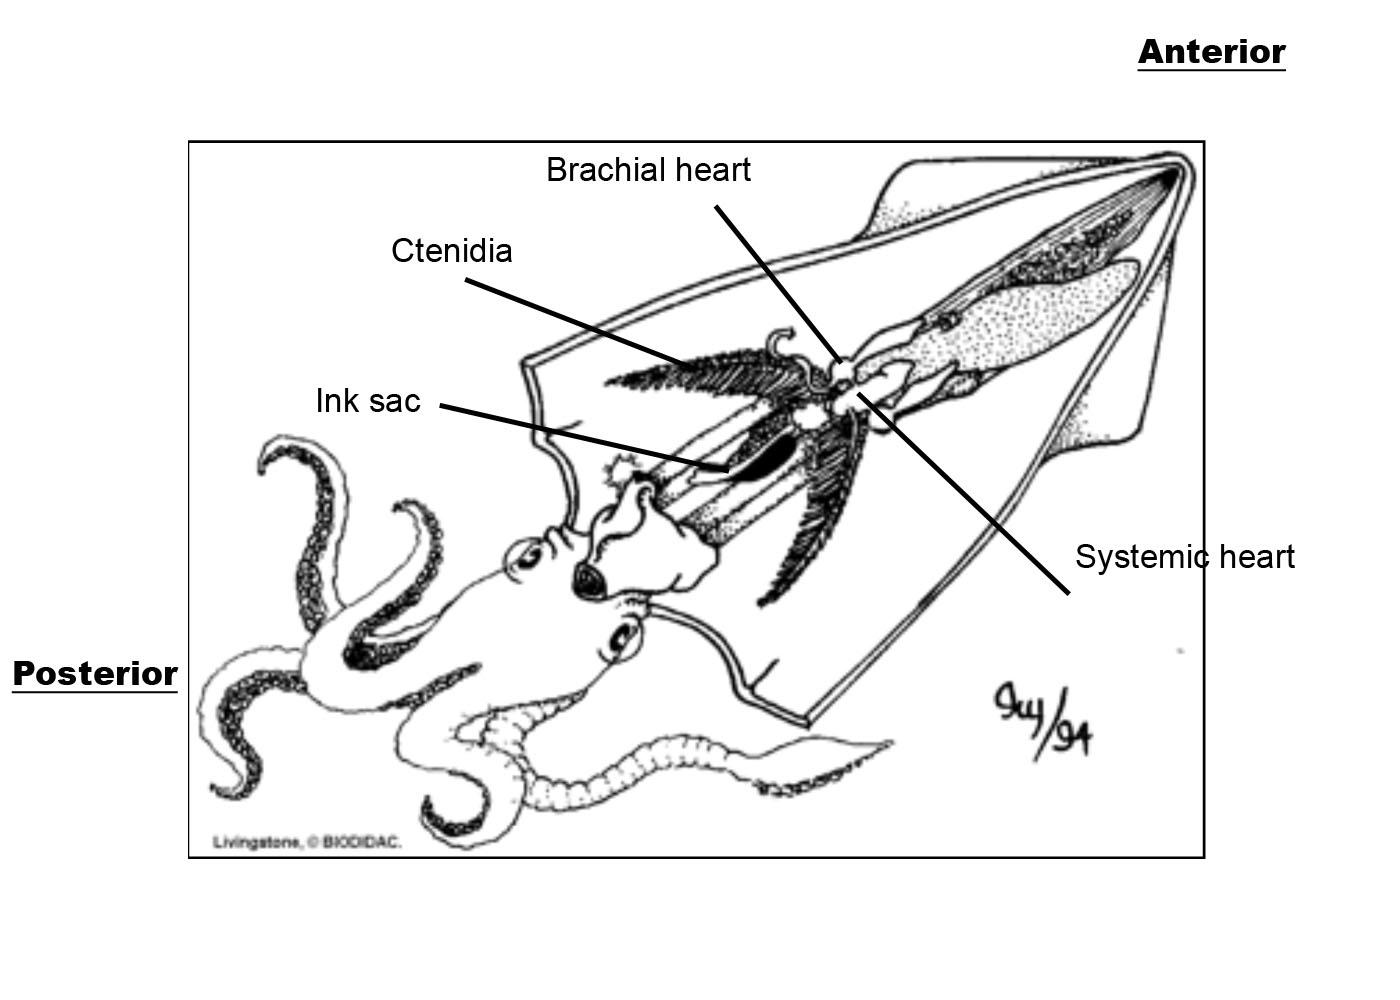 squid internal anatomy diagram lighting diagrams for portrait photography interior synergy middle school science 08 09